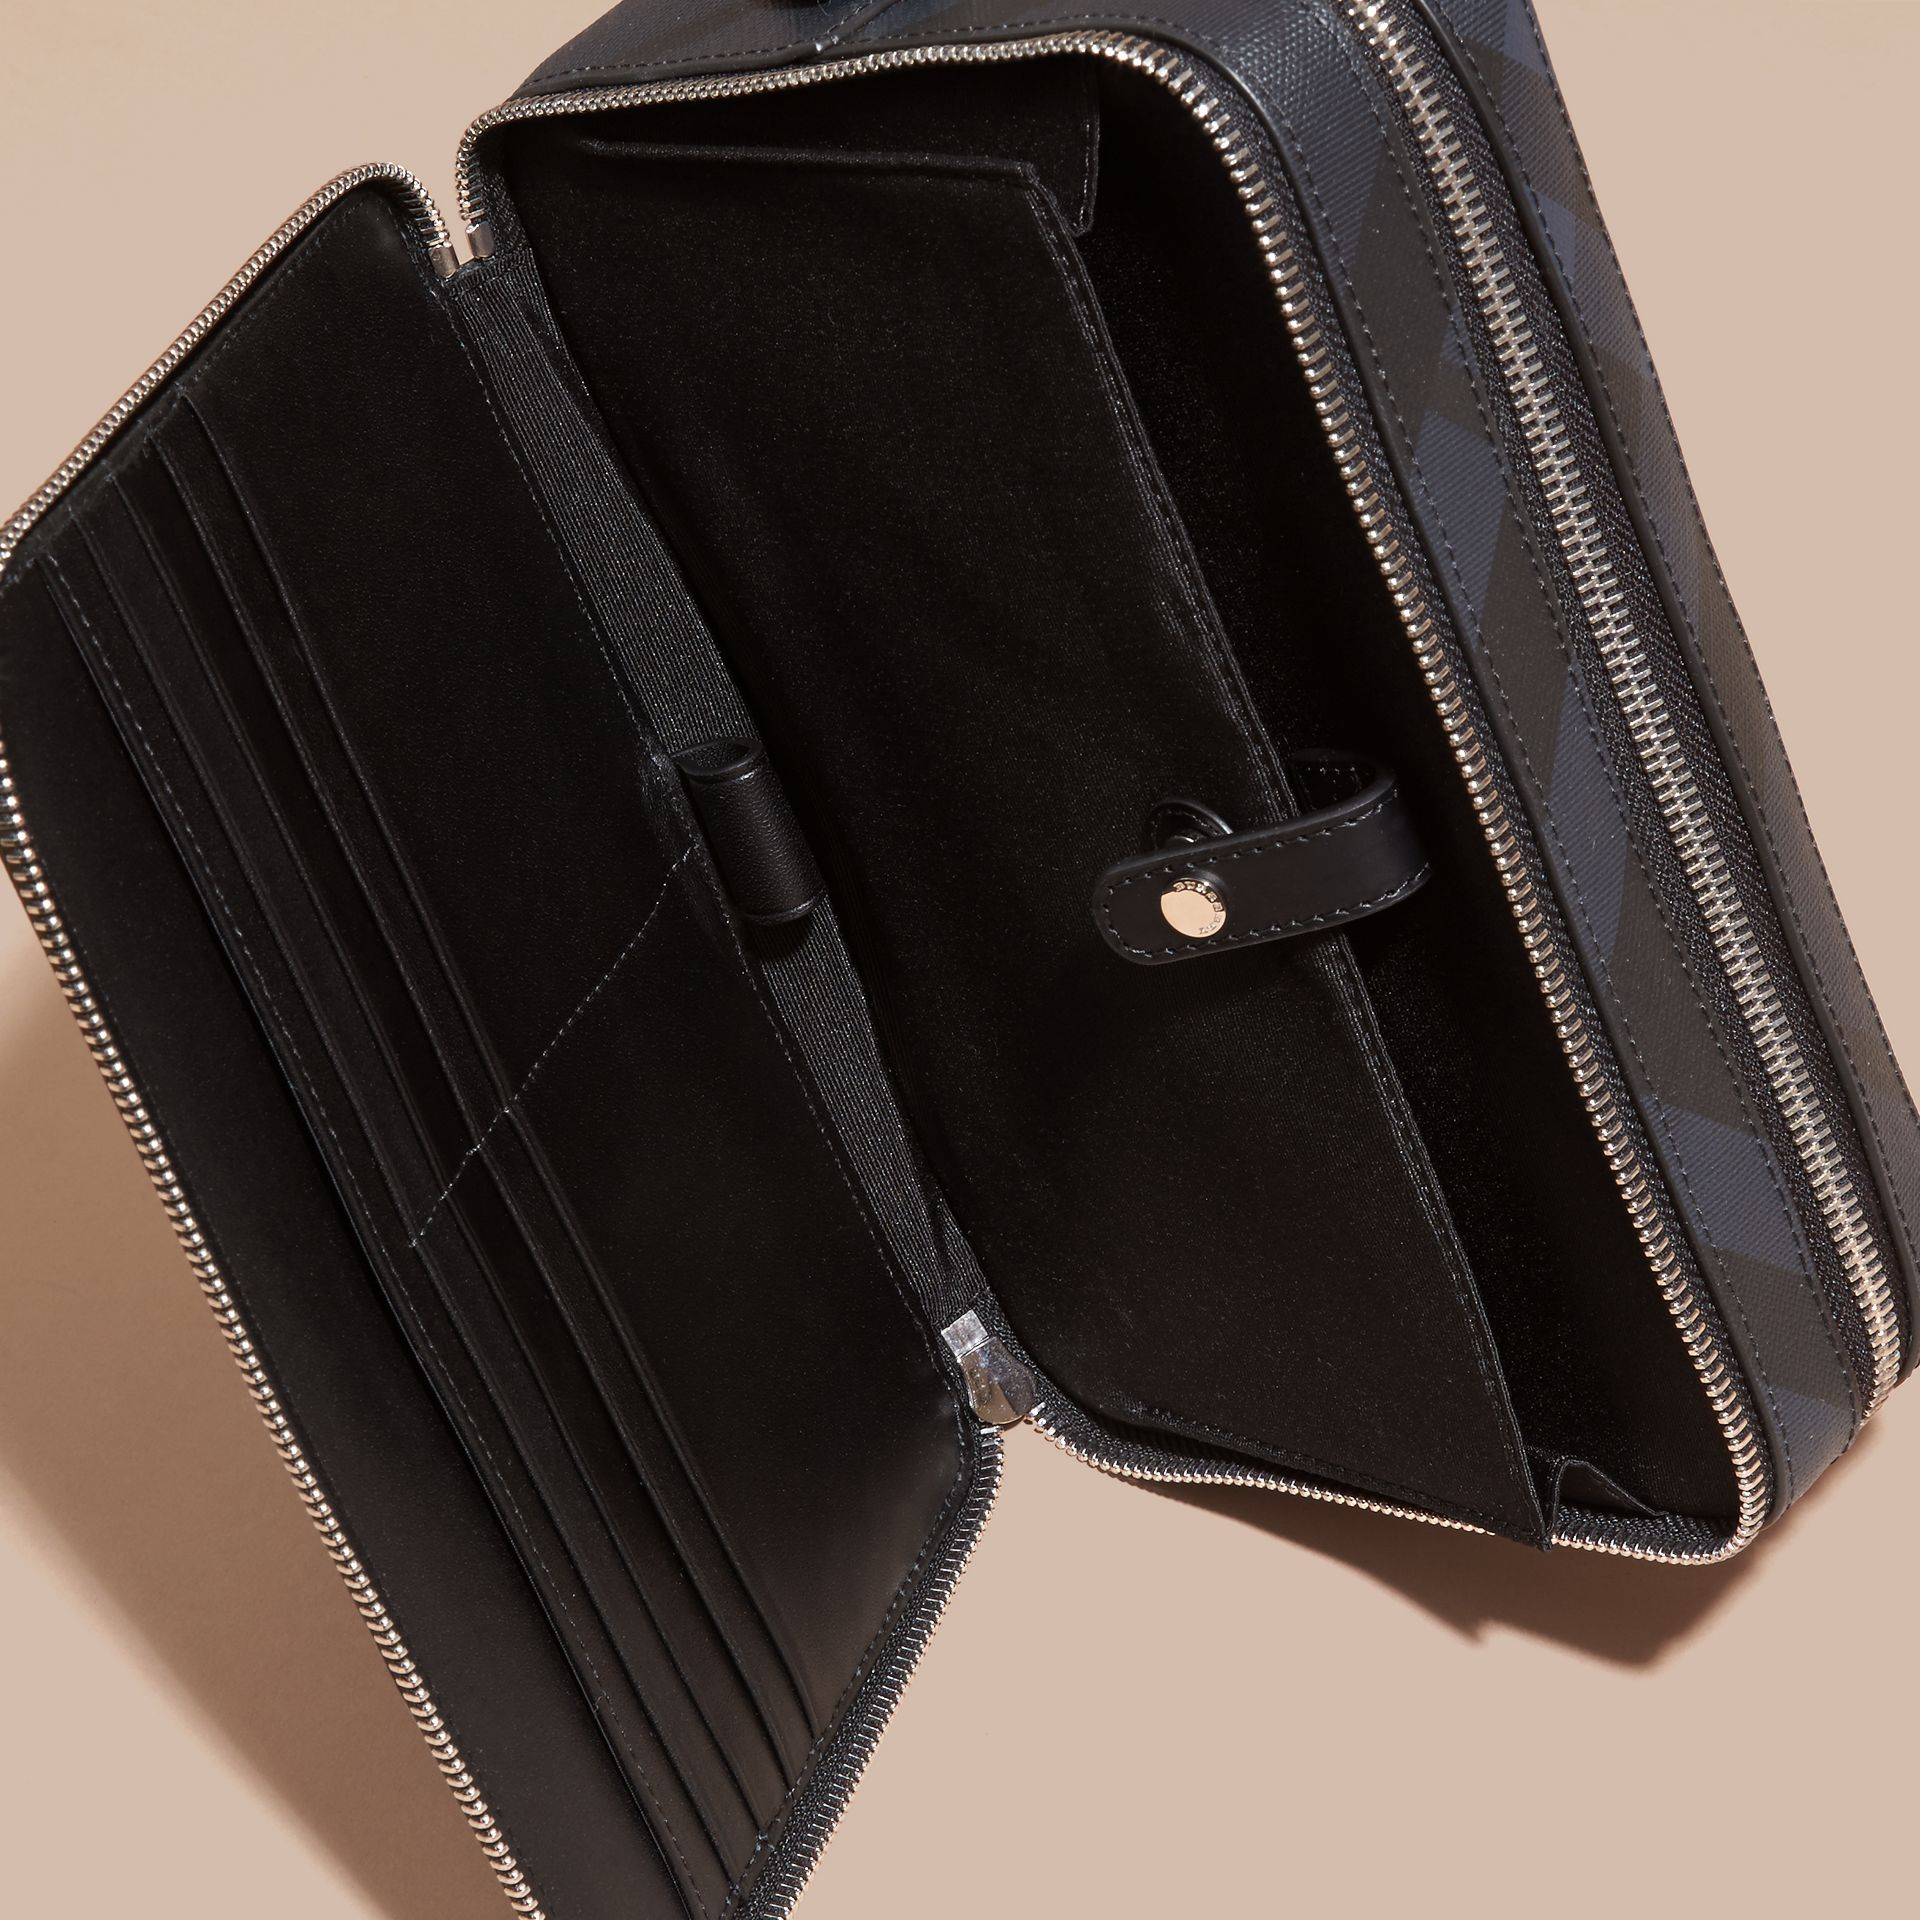 Leather-trimmed London Check Pouch in Navy/black - Men | Burberry - gallery image 4